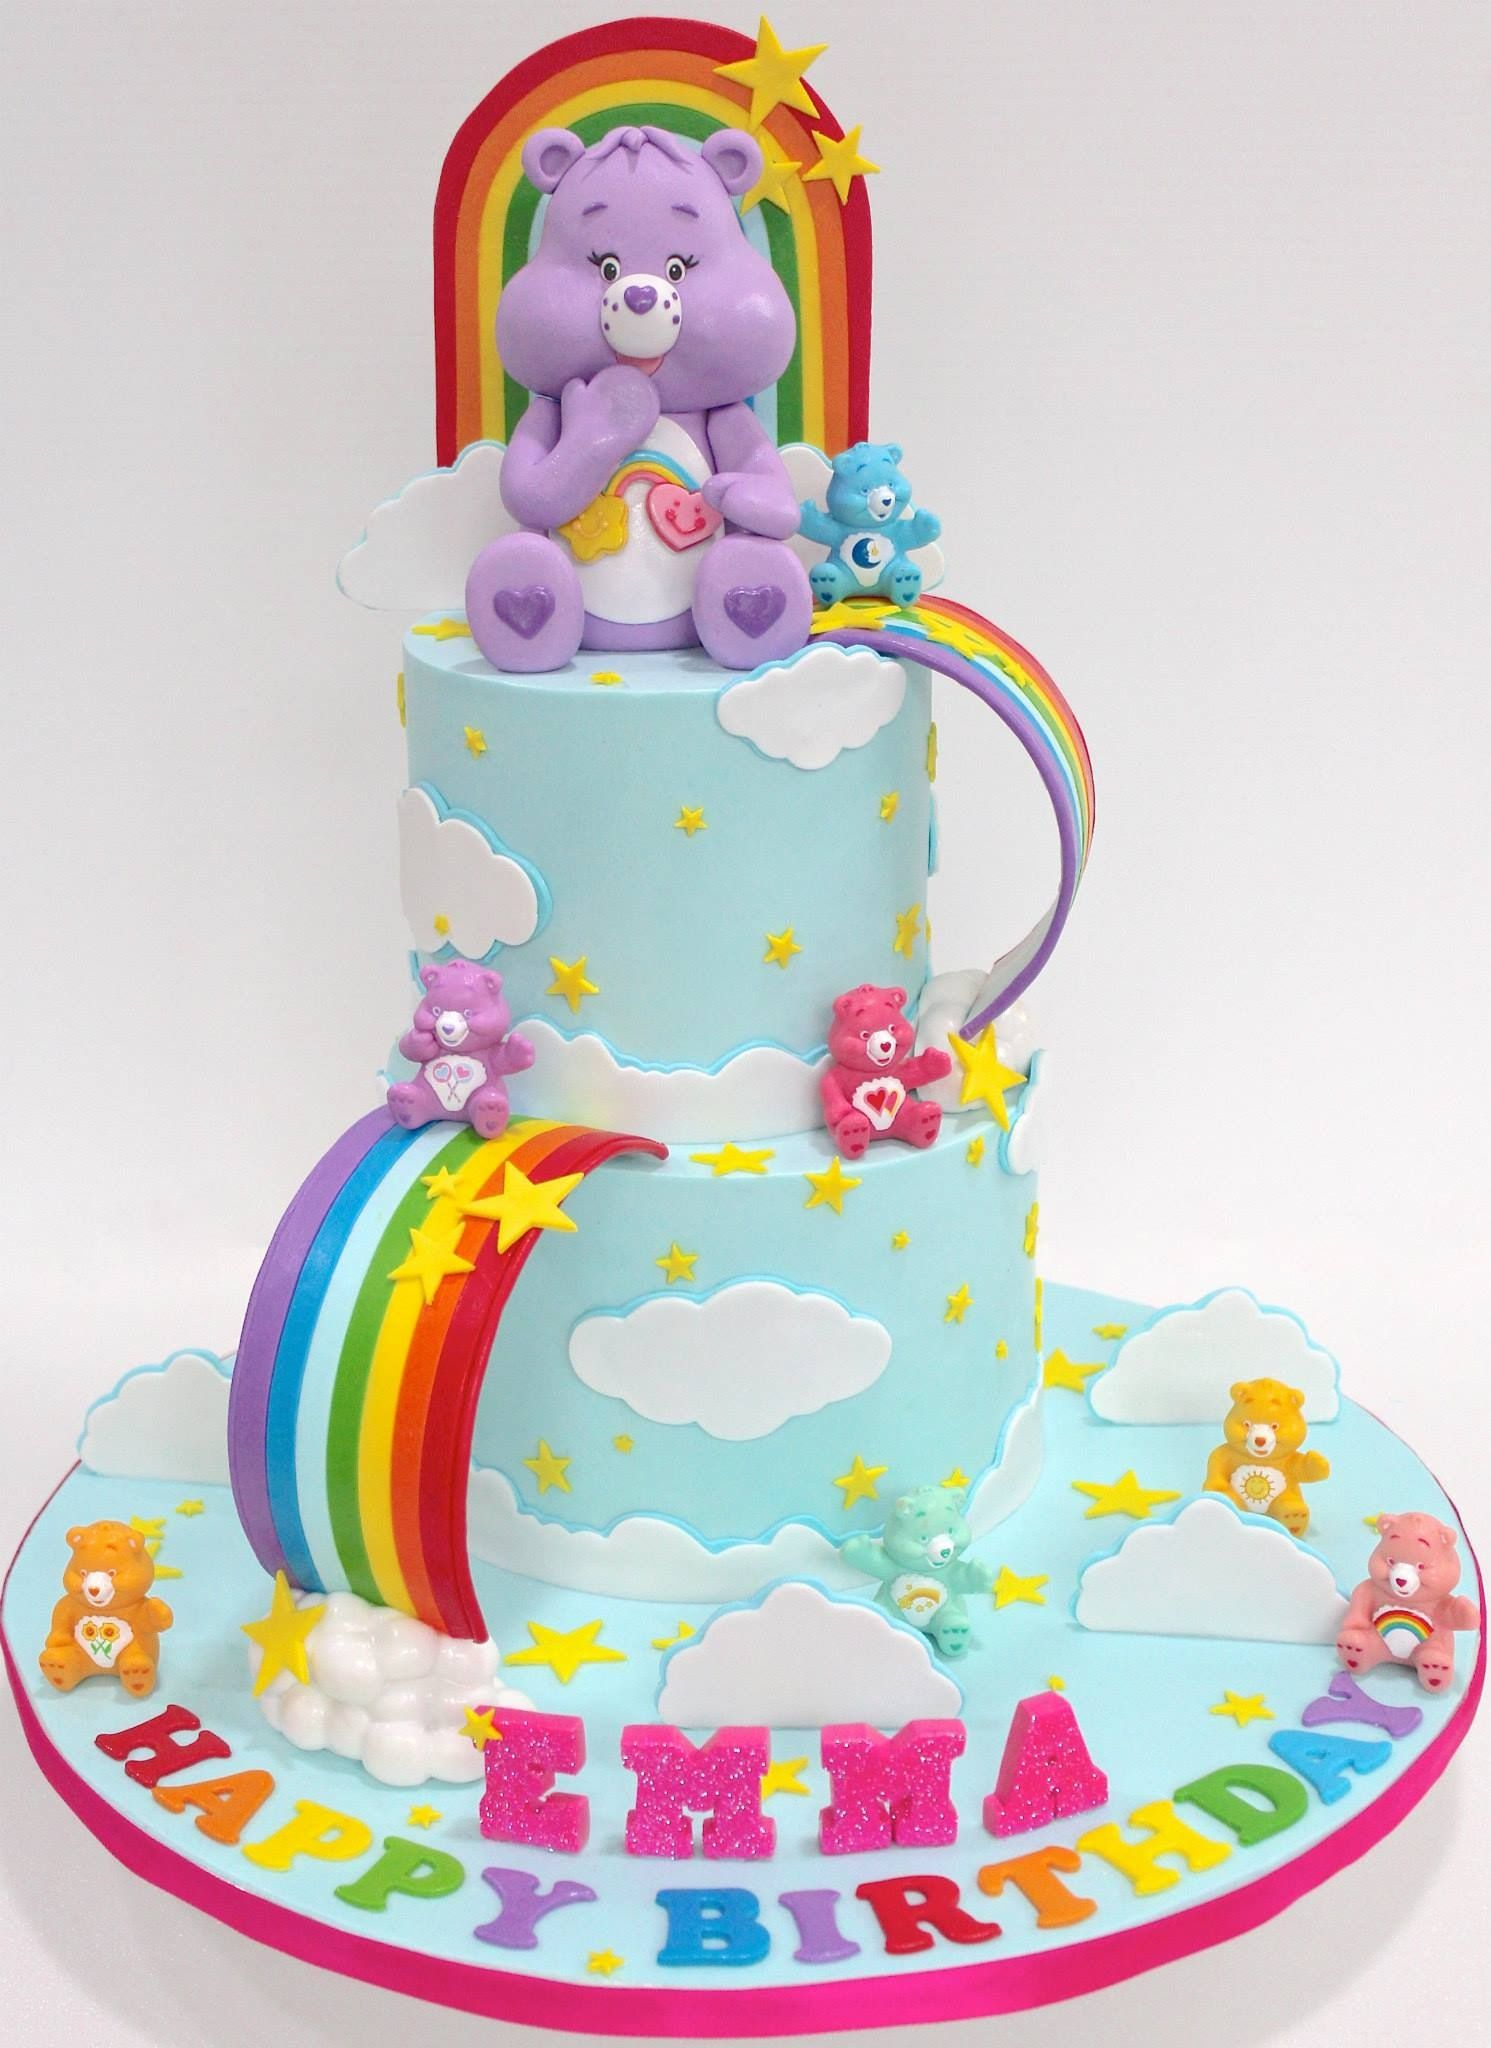 Carebear cake @elayna27 can you make this for flora's party ...